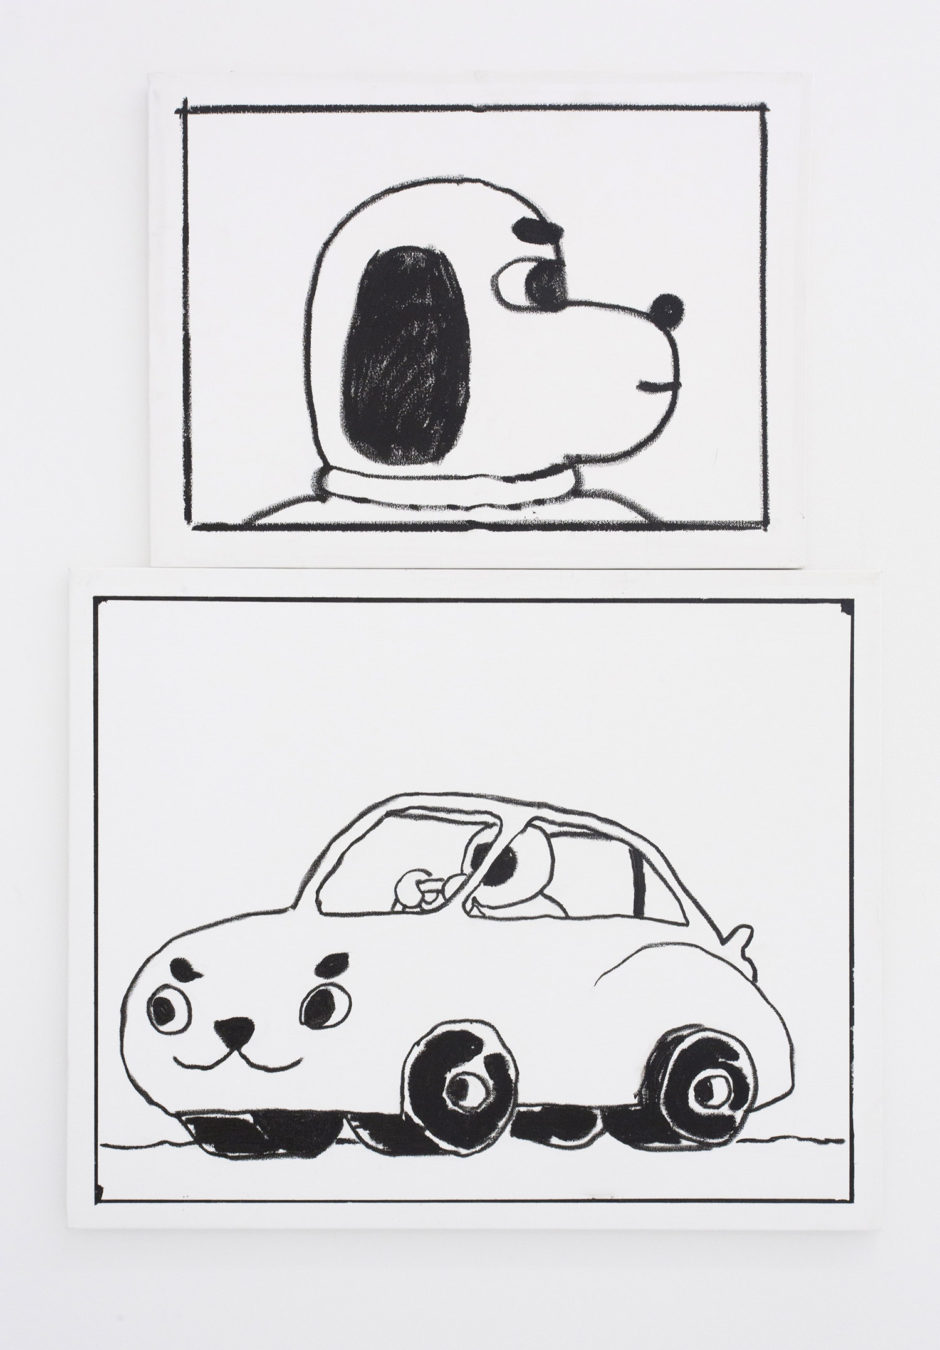 "(top) ""Ben Jones Comics Panel #34 (Dog Profile)"", 2016, oil stick on canvas, 18 x 24 inches, 45.5 x 61 cm; (bottom) ""Ben Jones Comics Panel #28 (Car)"", 2016, oil stick on canvas, 24 x 30 inches, 61 x 76 cm"